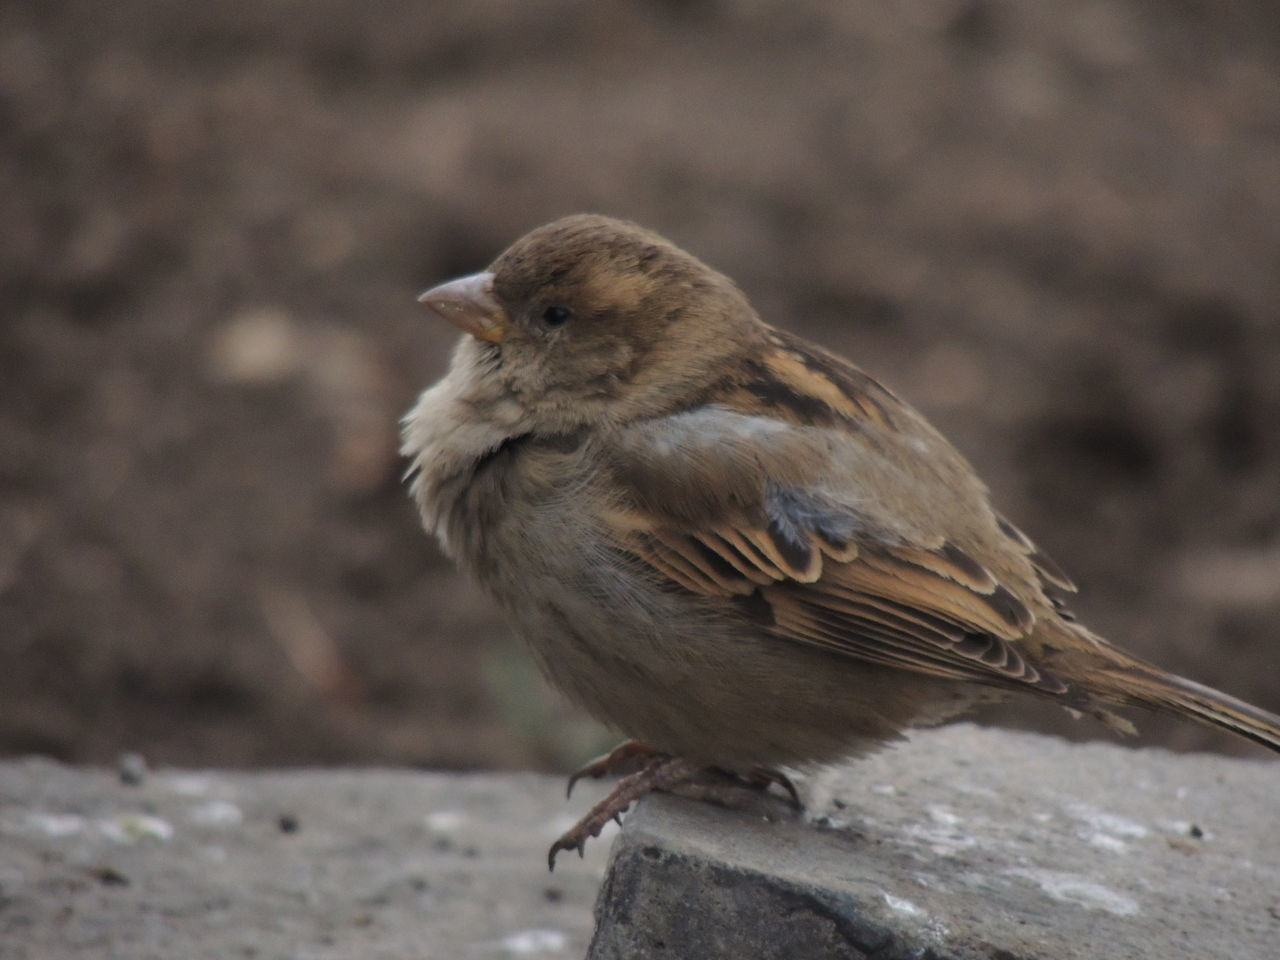 Animal Themes Animal Wildlife Animals In The Wild Bird Close-up Day Focus On Foreground Full Length Nature No People One Animal Outdoors Perching Robin Sparrow